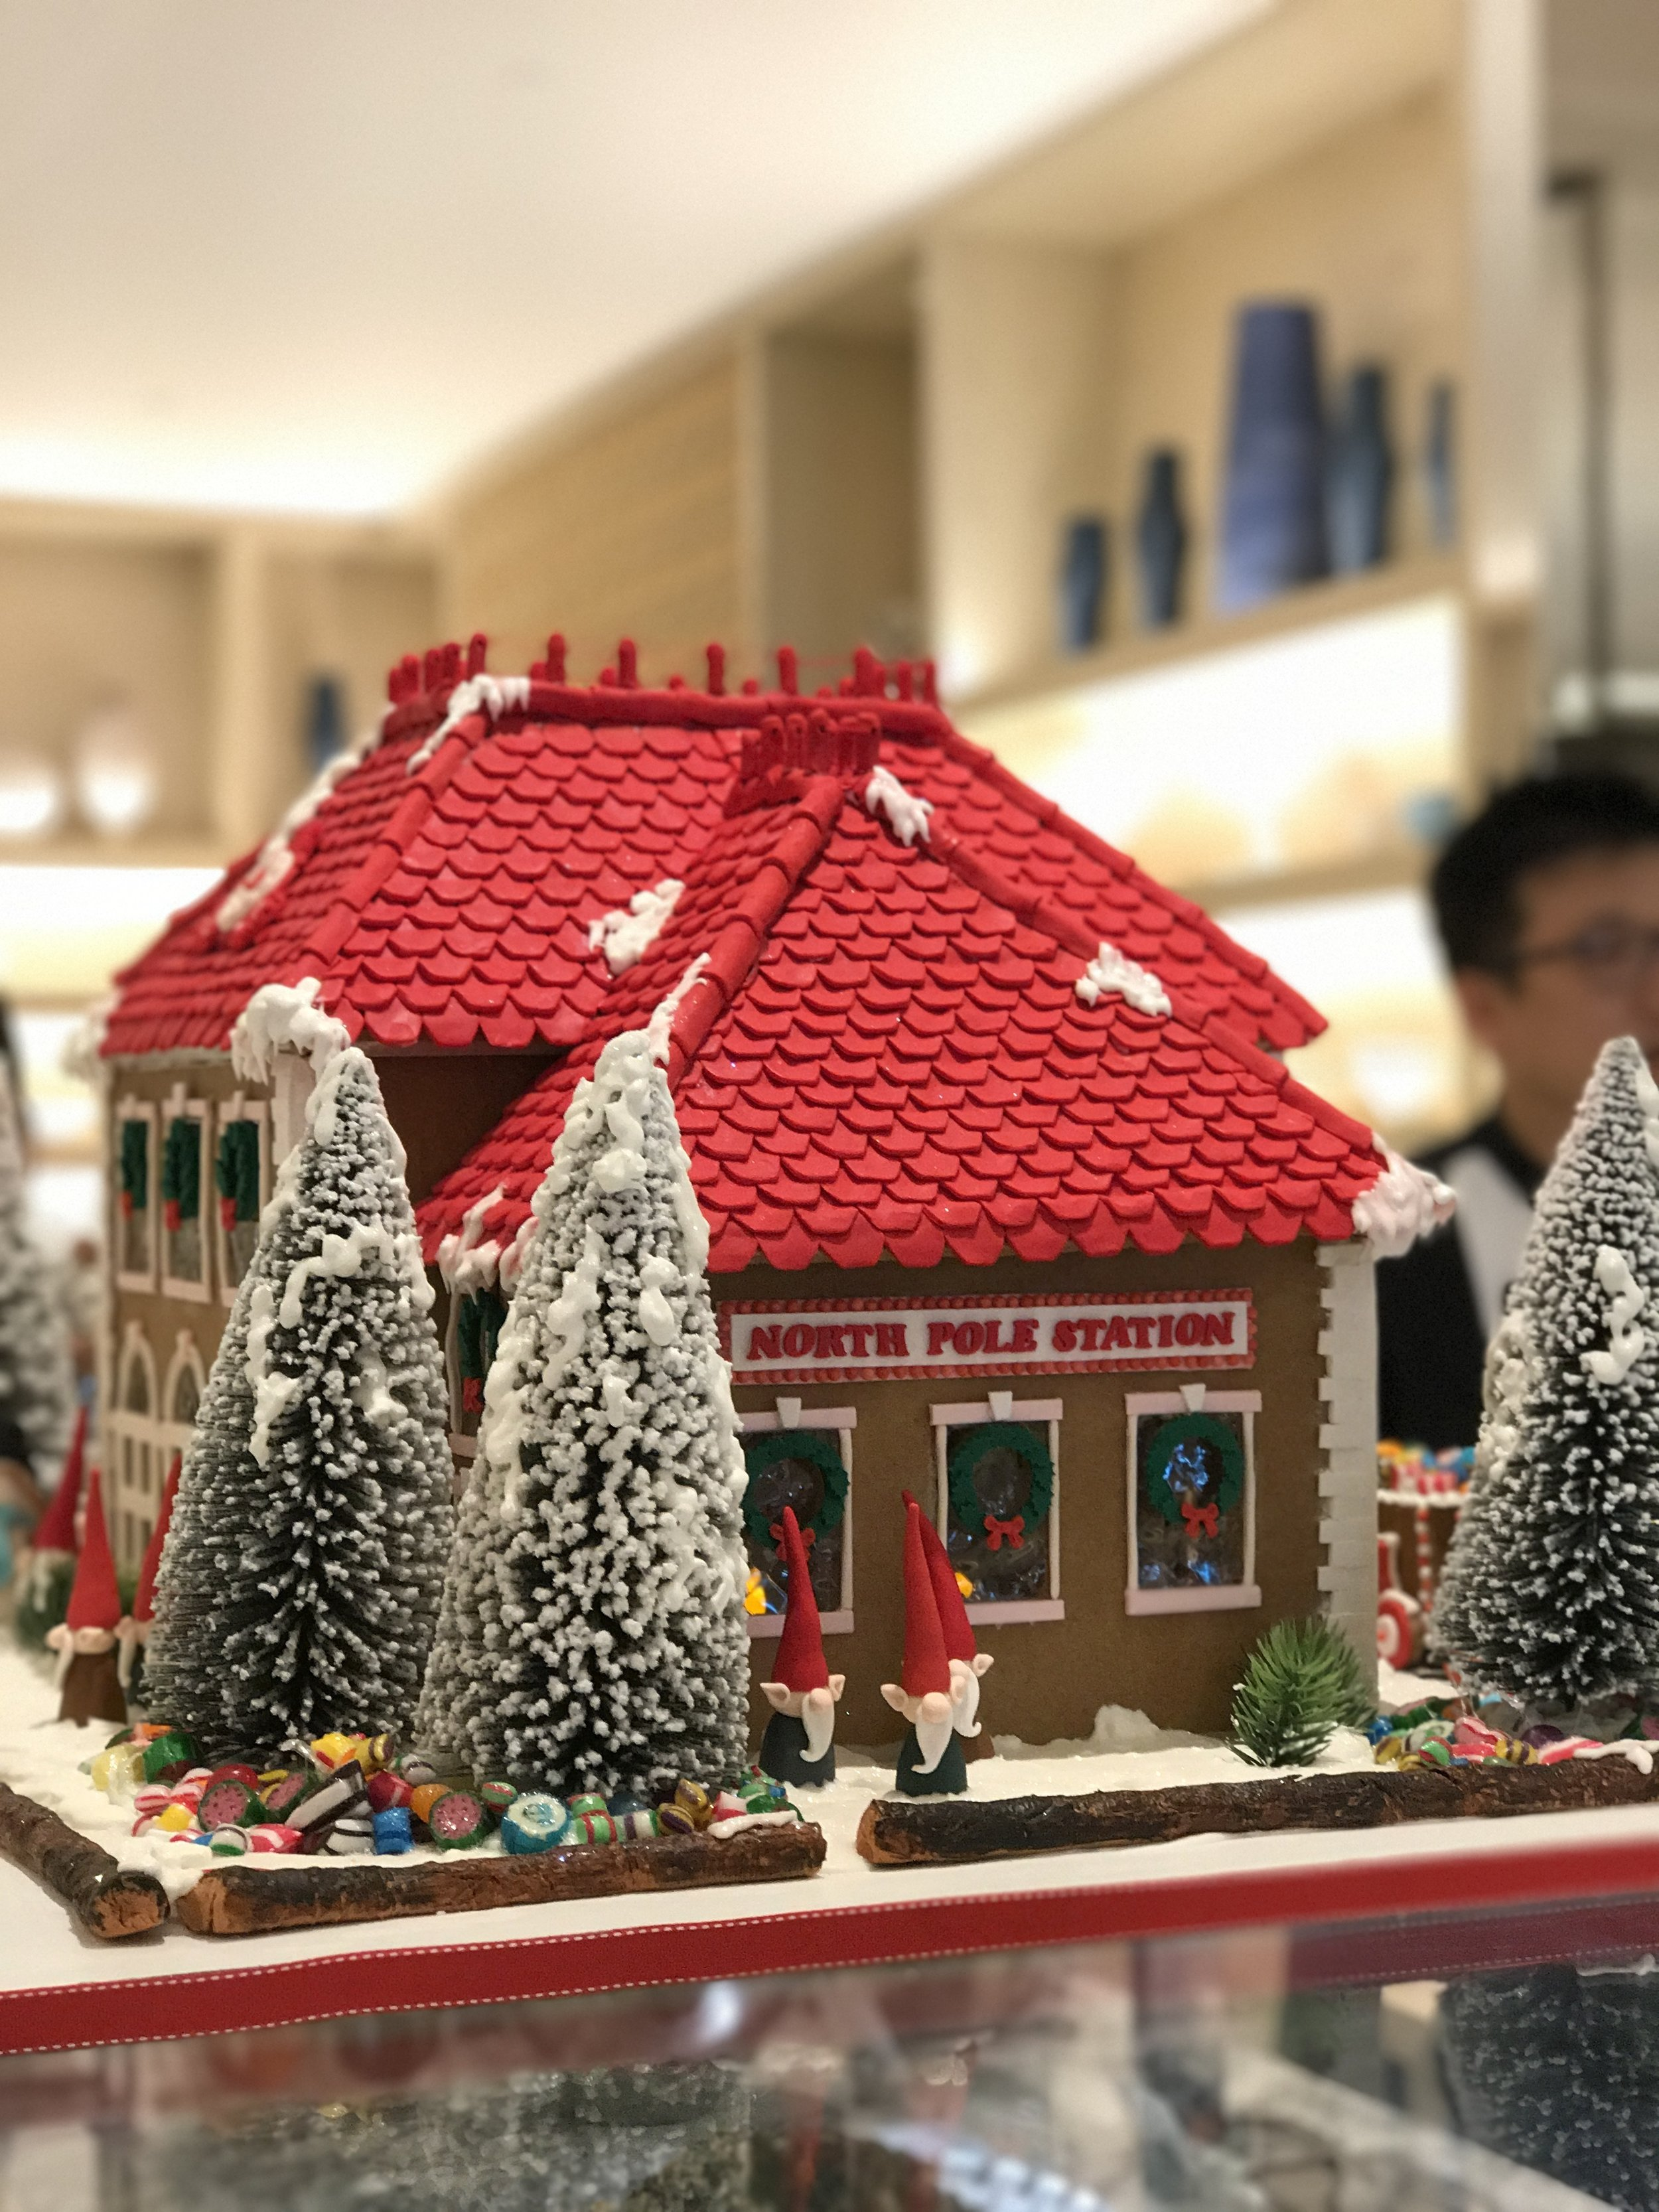 Beautiful gingerbread house that can't be taken apart ;-)